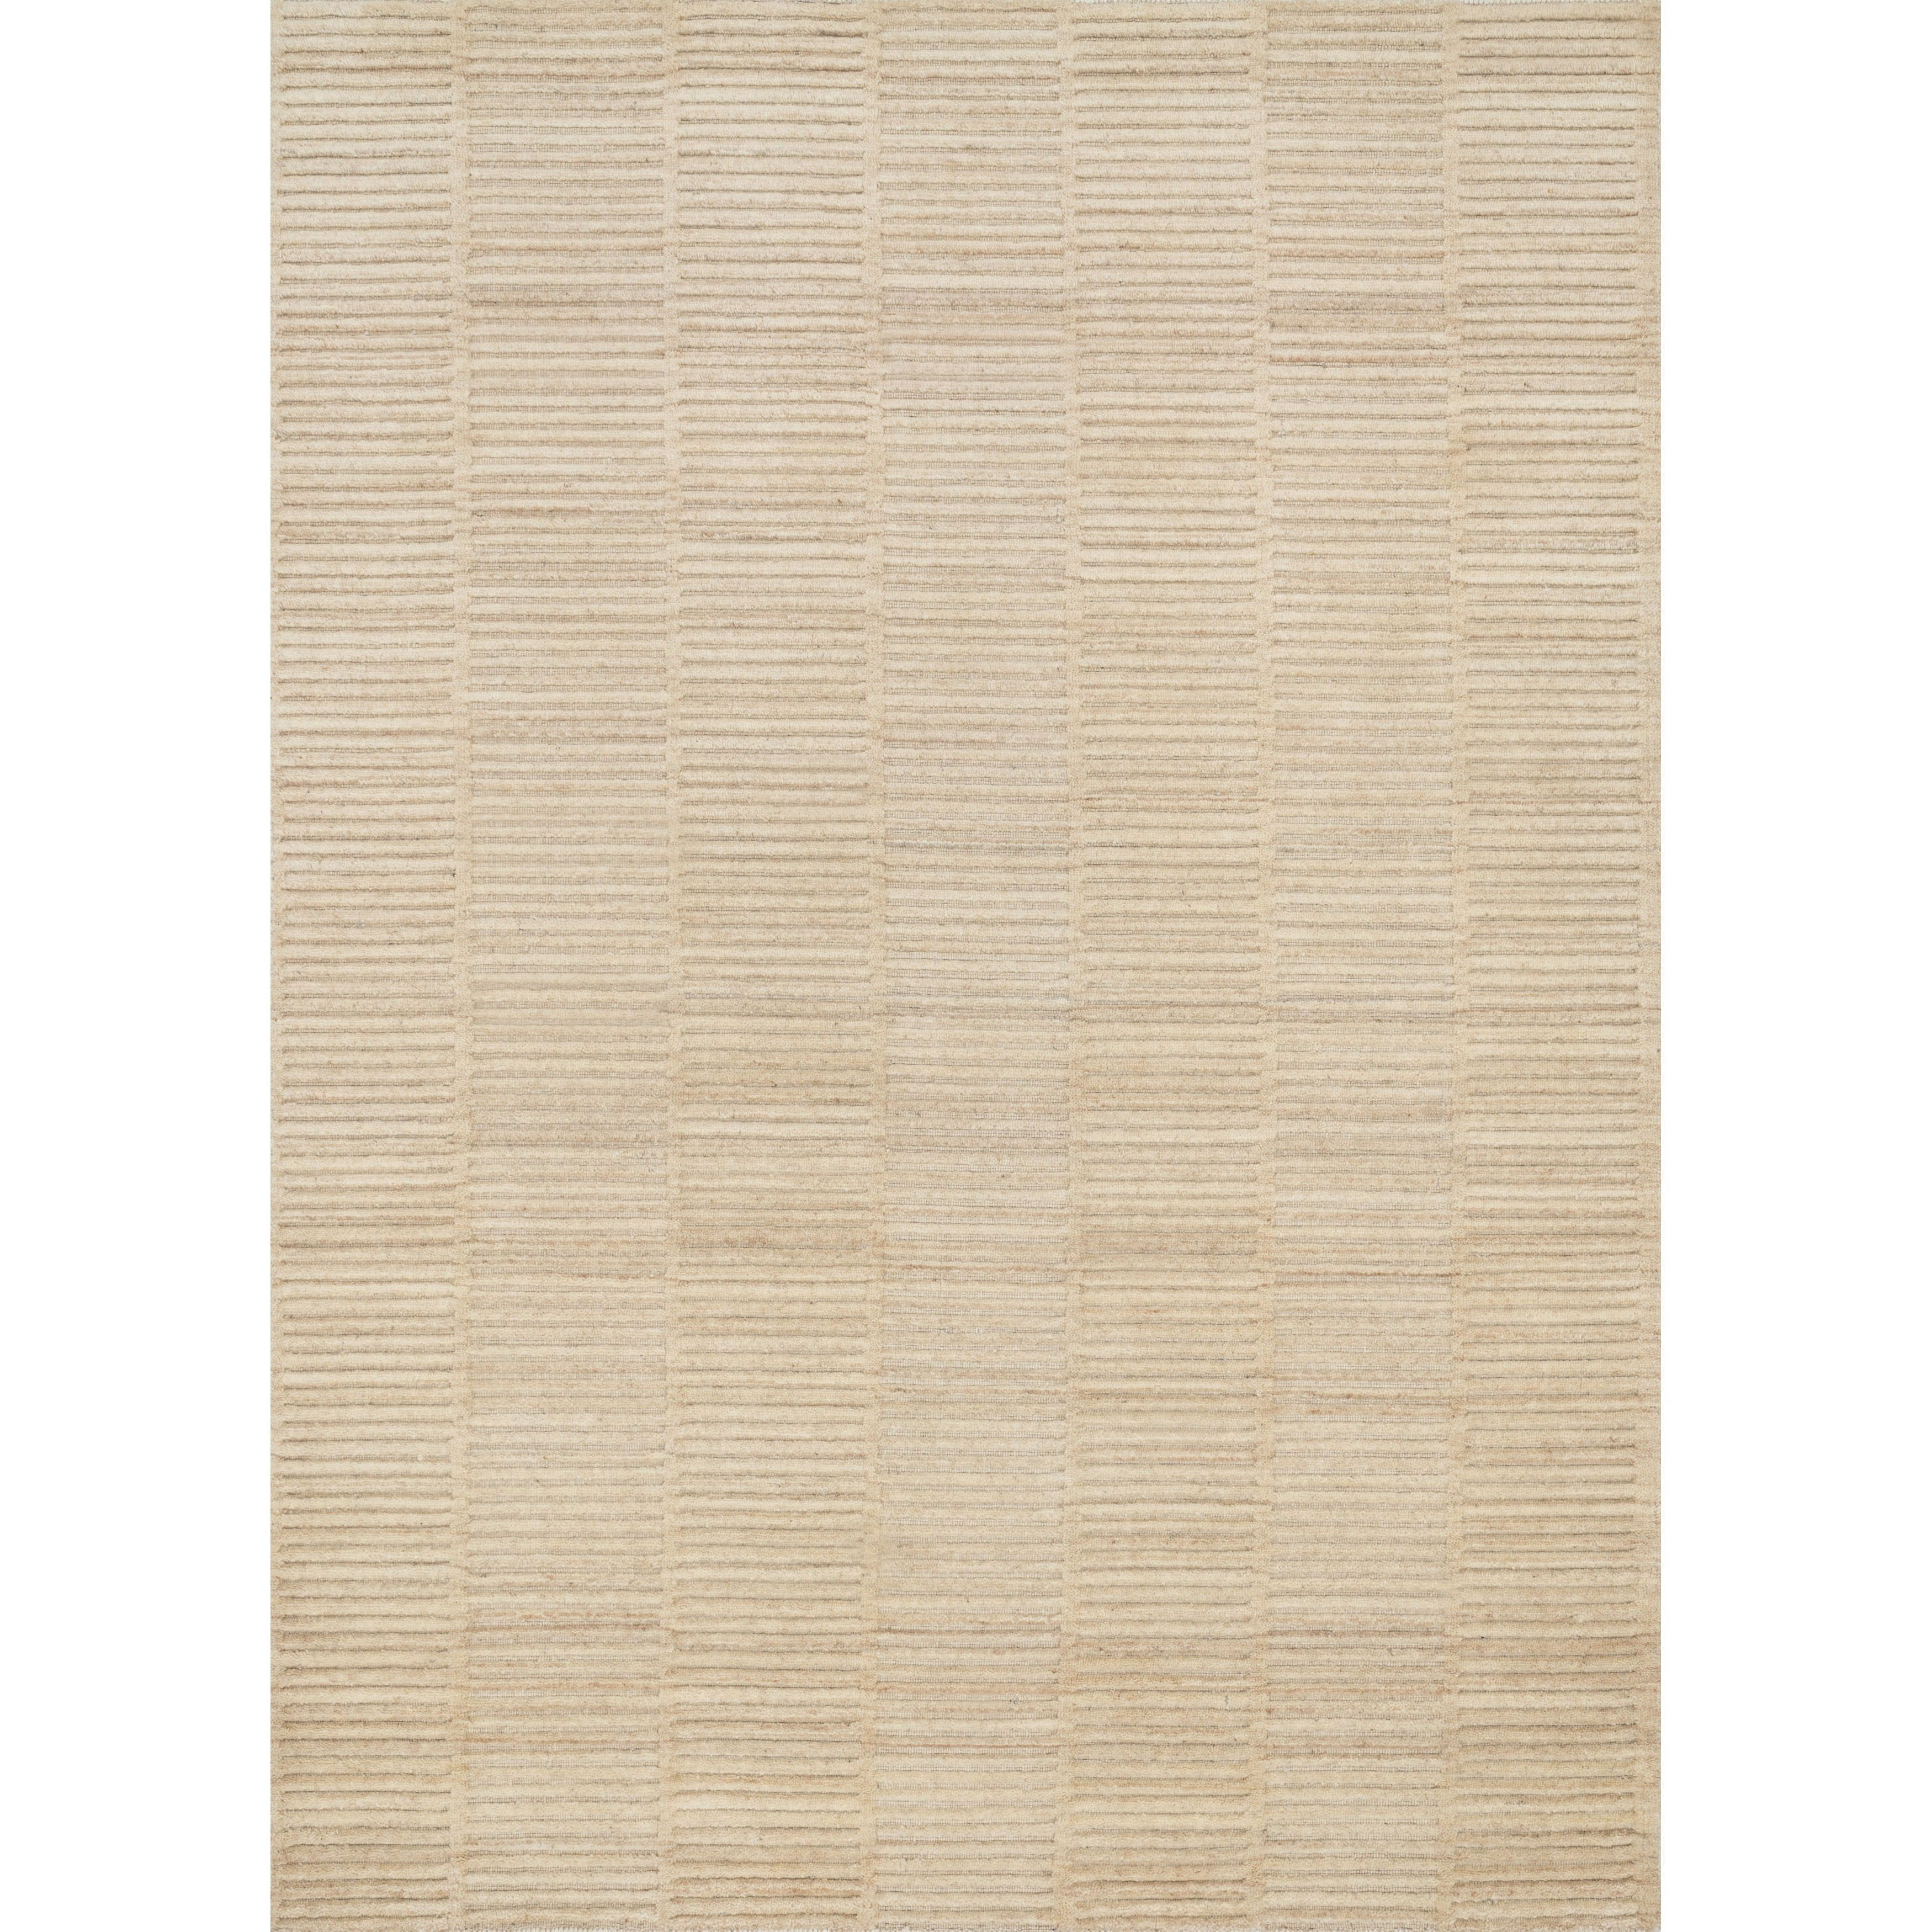 Alexander Home Hand-knotted Franklin Wool Rug ,